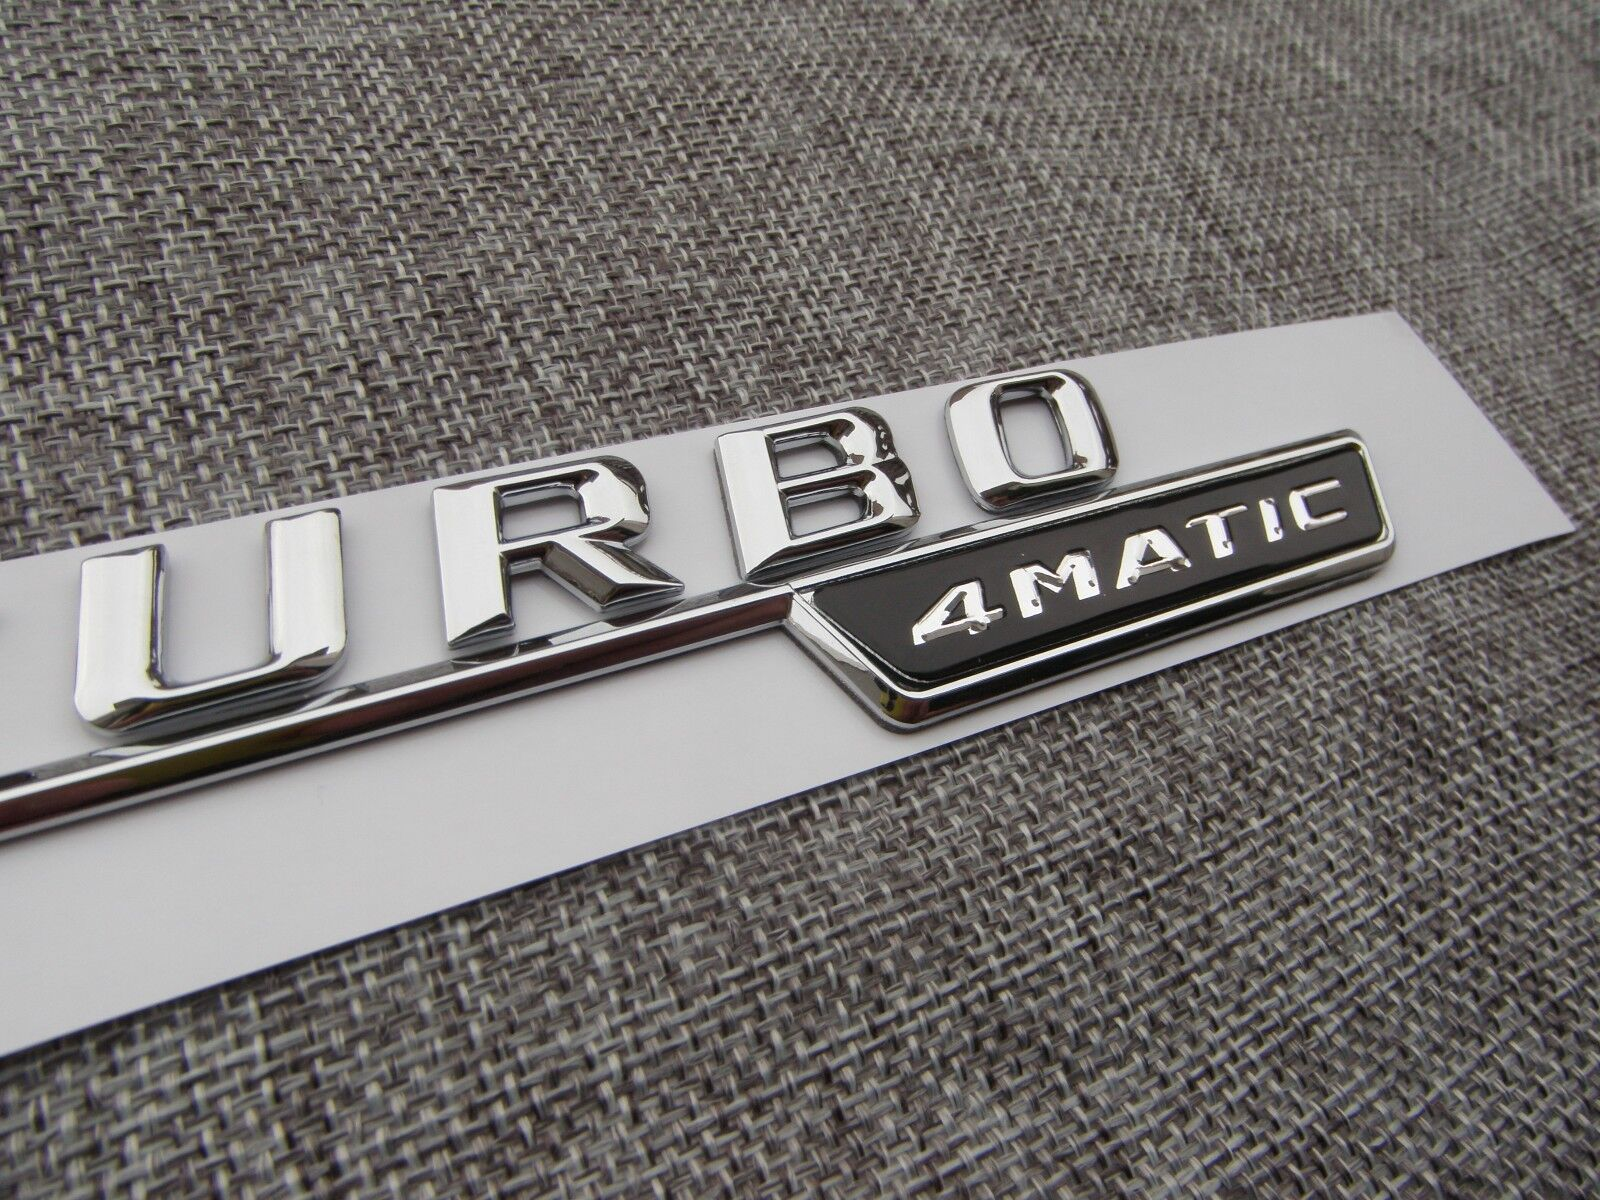 Chrome biturbo 4matic letters trunk emblem sticker for Mercedes benz trunk emblem